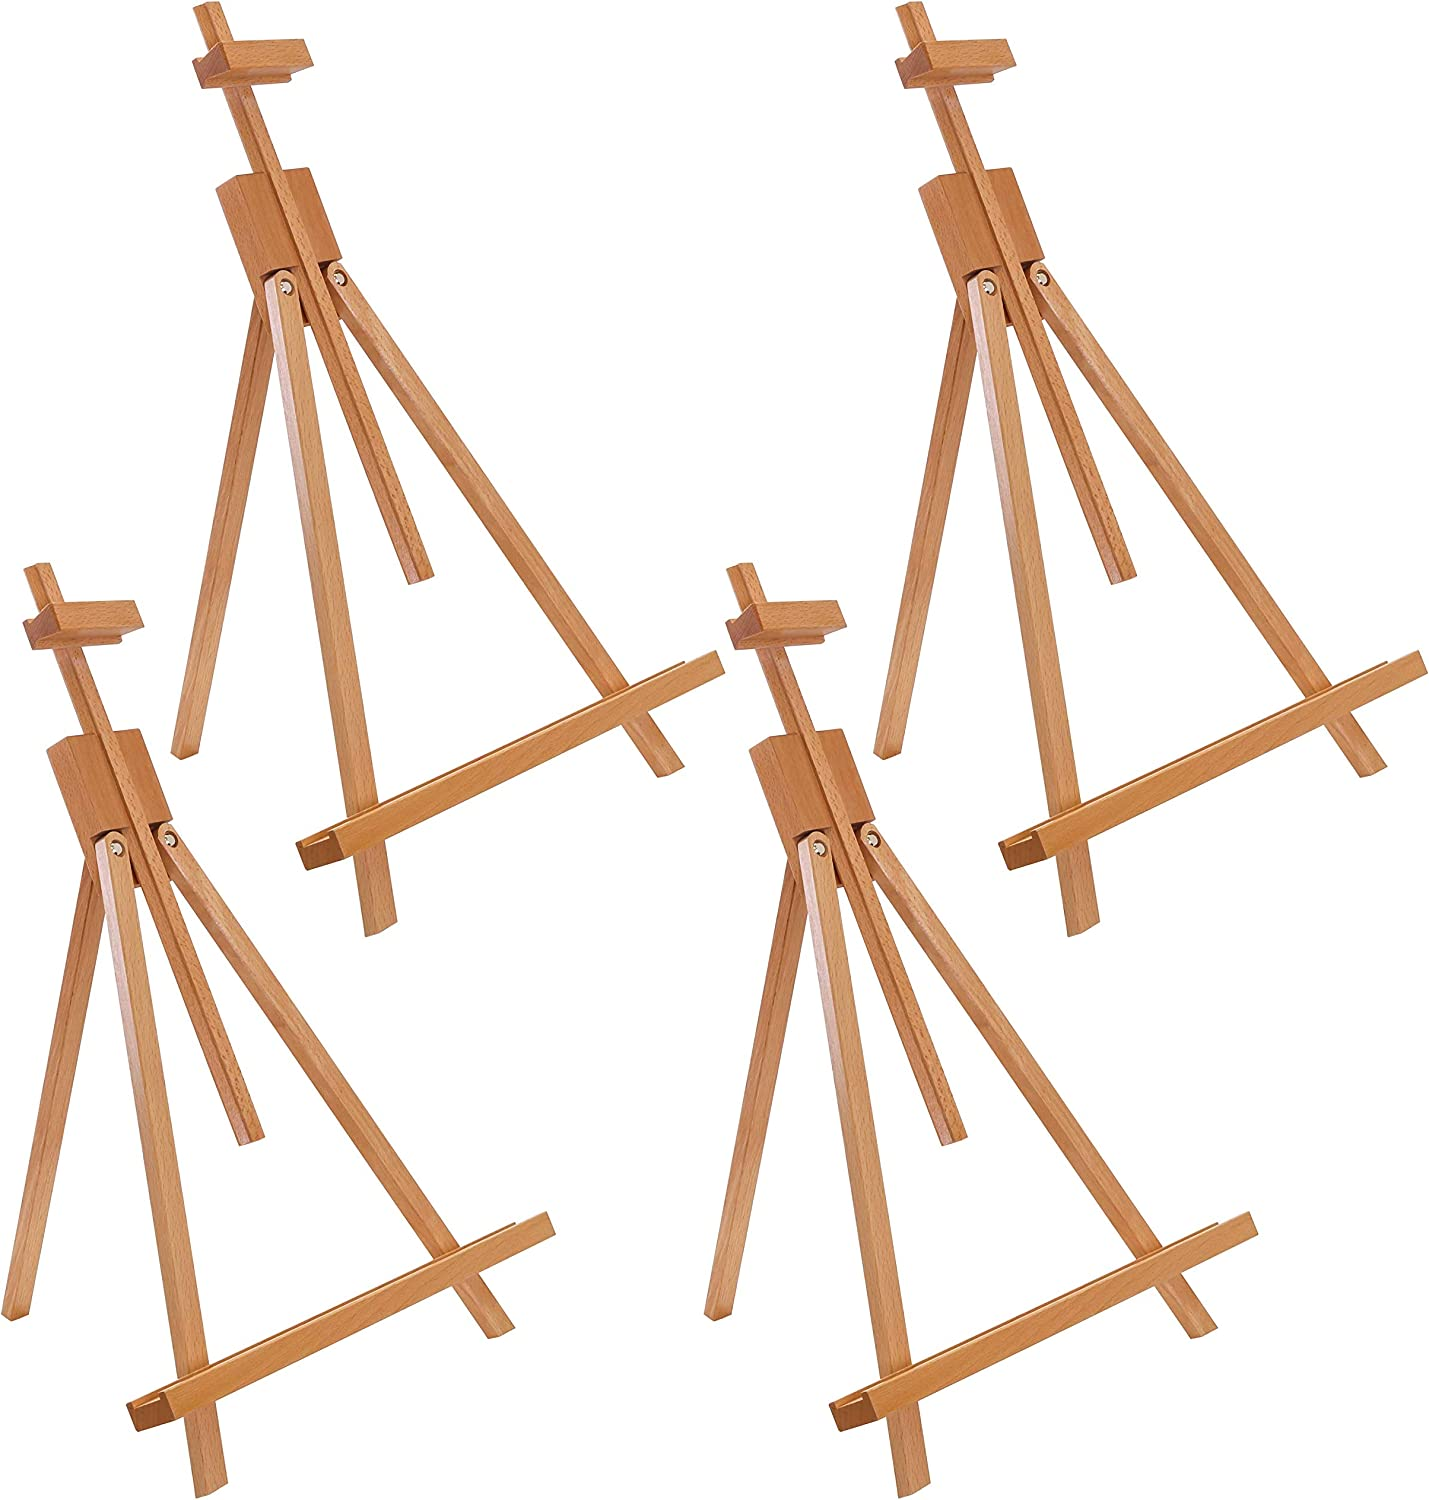 "U.S. Art Supply Topanga 31"" High Tabletop Wood Folding A-Frame Artist Studio Easel (Pack of 4) - Adjustable Beechwood Tripod Display Stand, Holds Up to 27"" Canvas - Portable Table Desktop Holder"